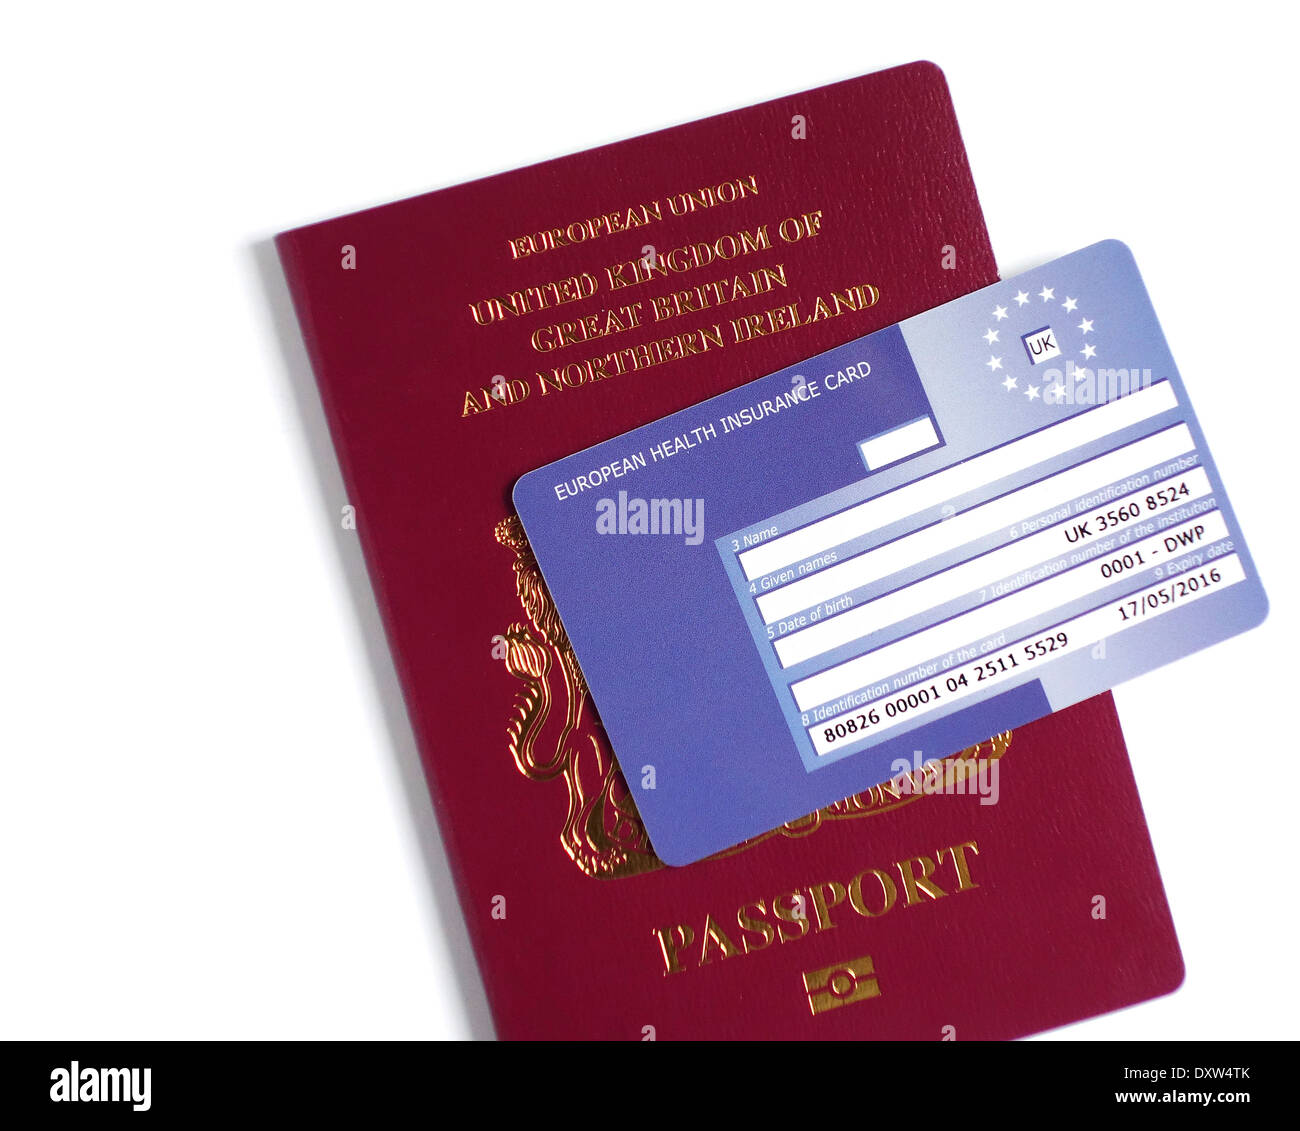 UK passport and ehic card - Stock Image